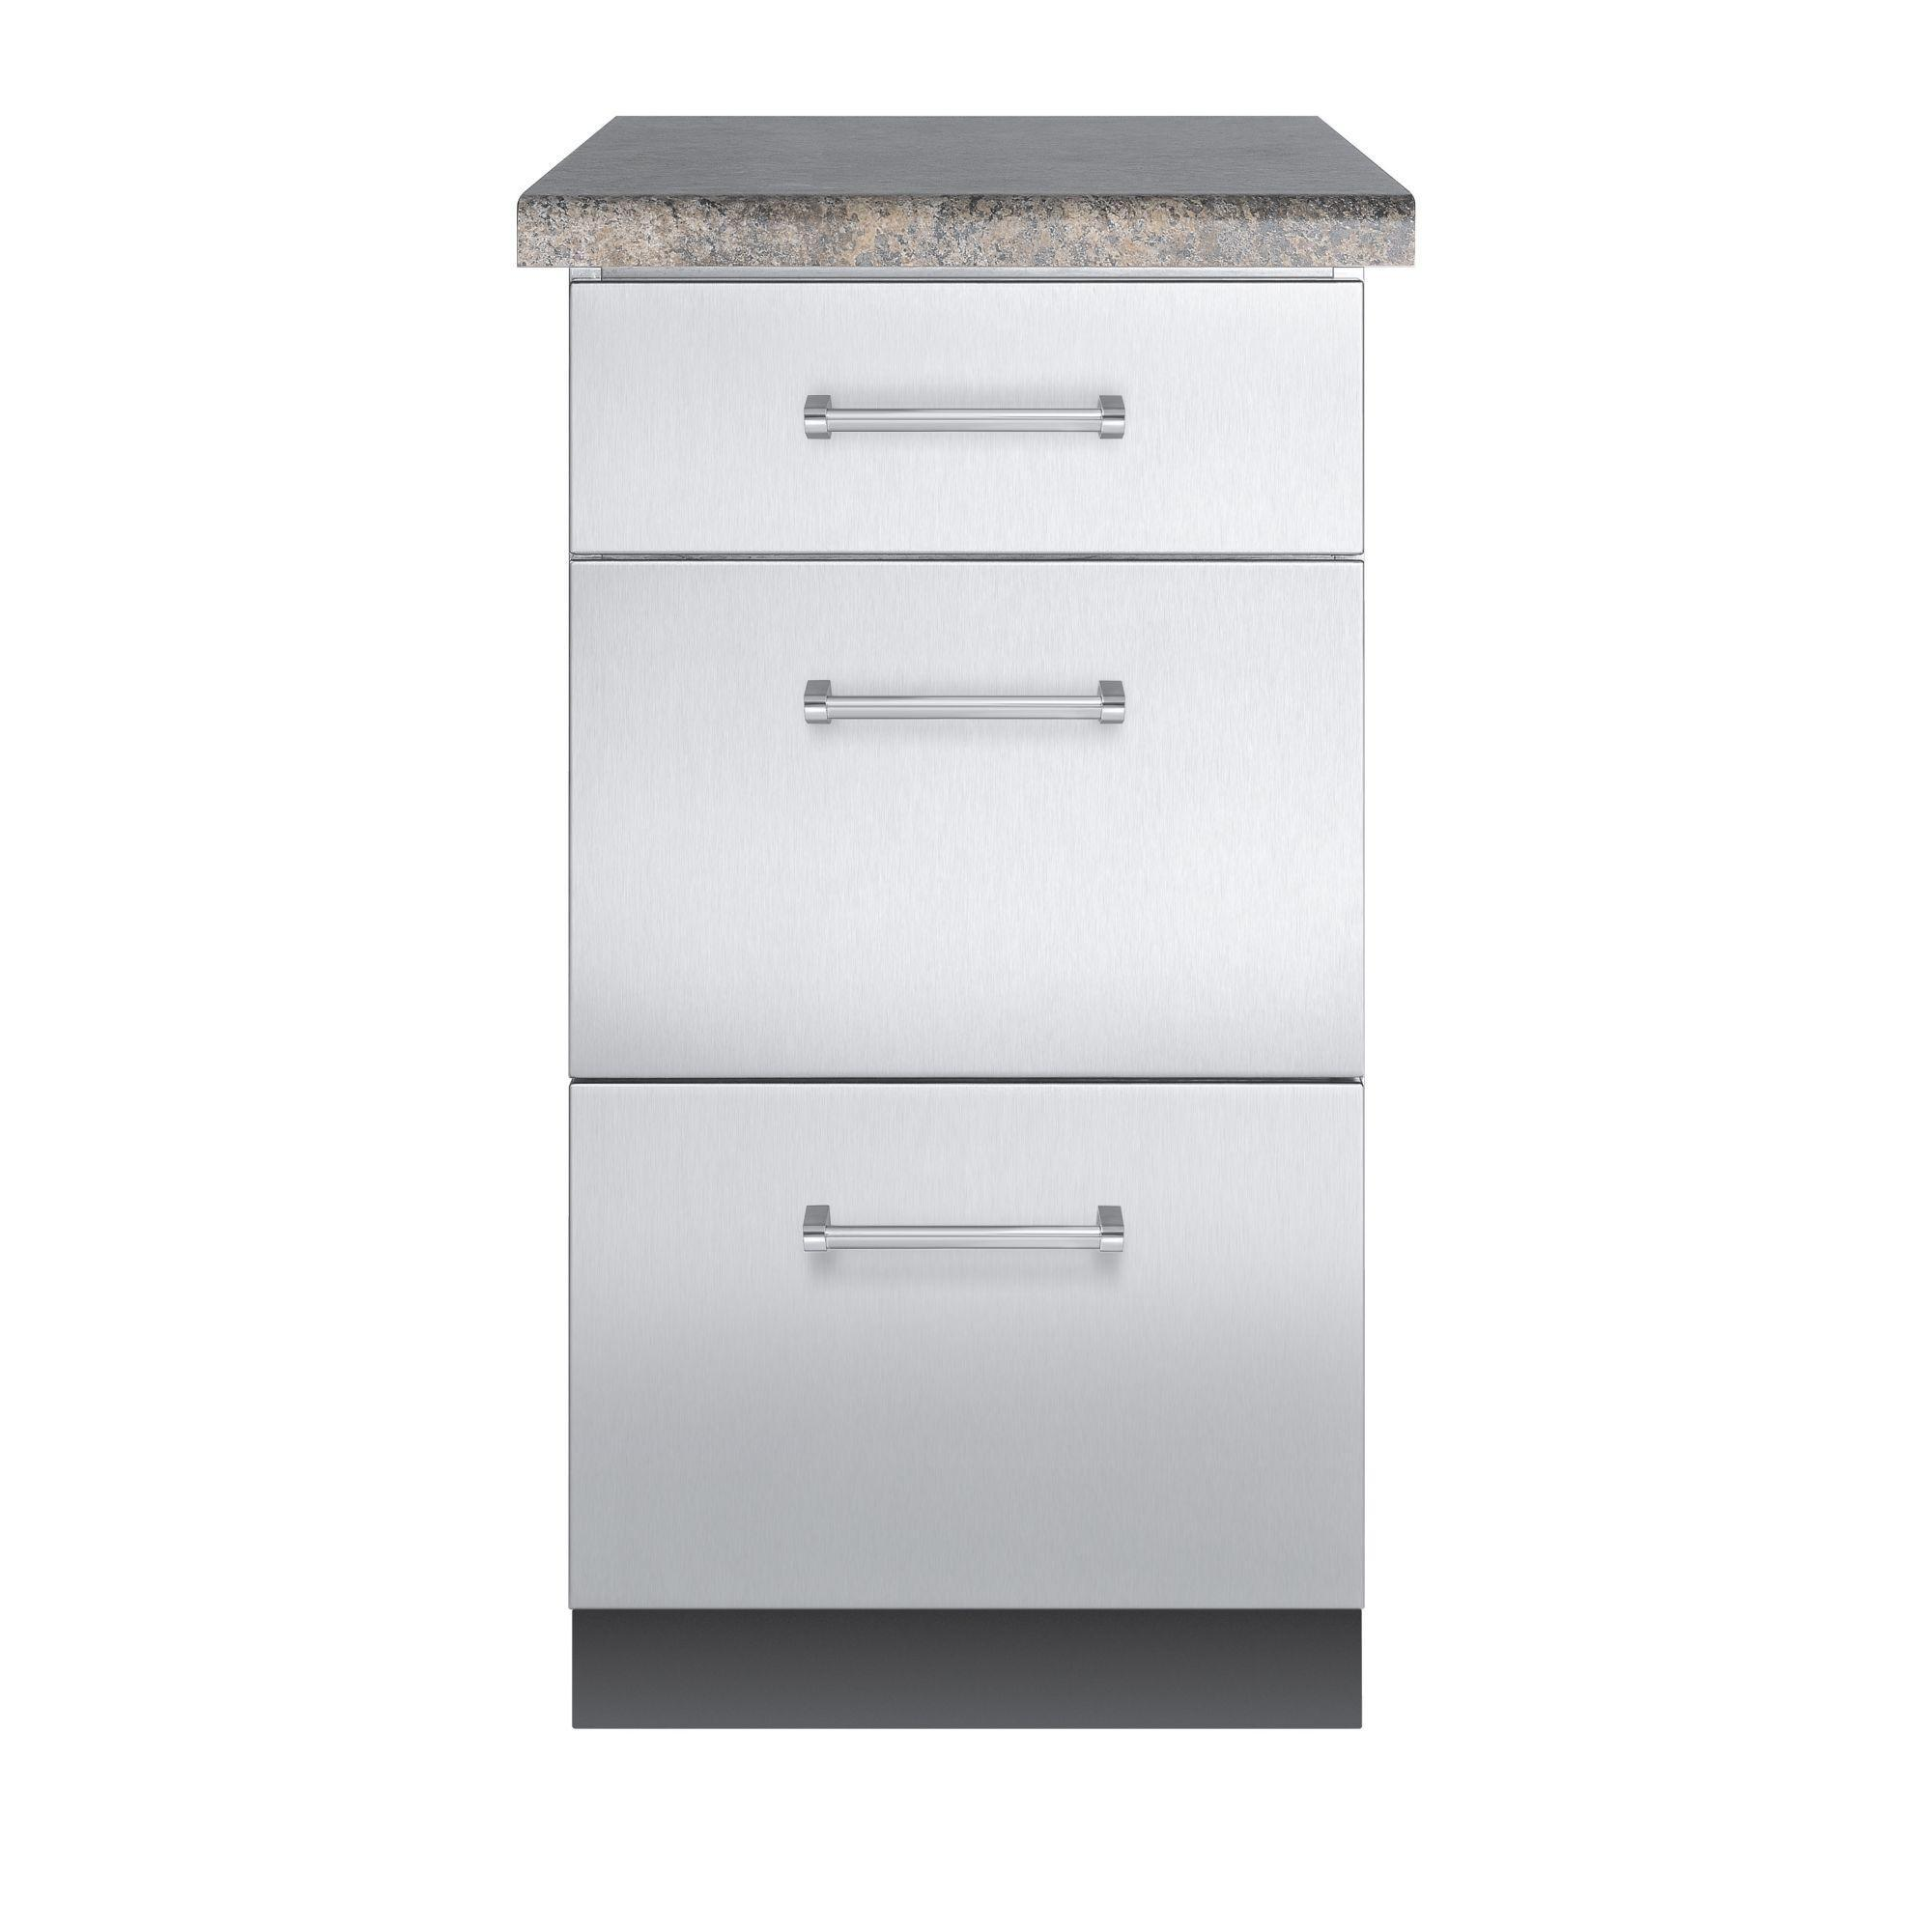 Vbo1830ss viking vbo1830ss outdoor series for Viking outdoor cabinets